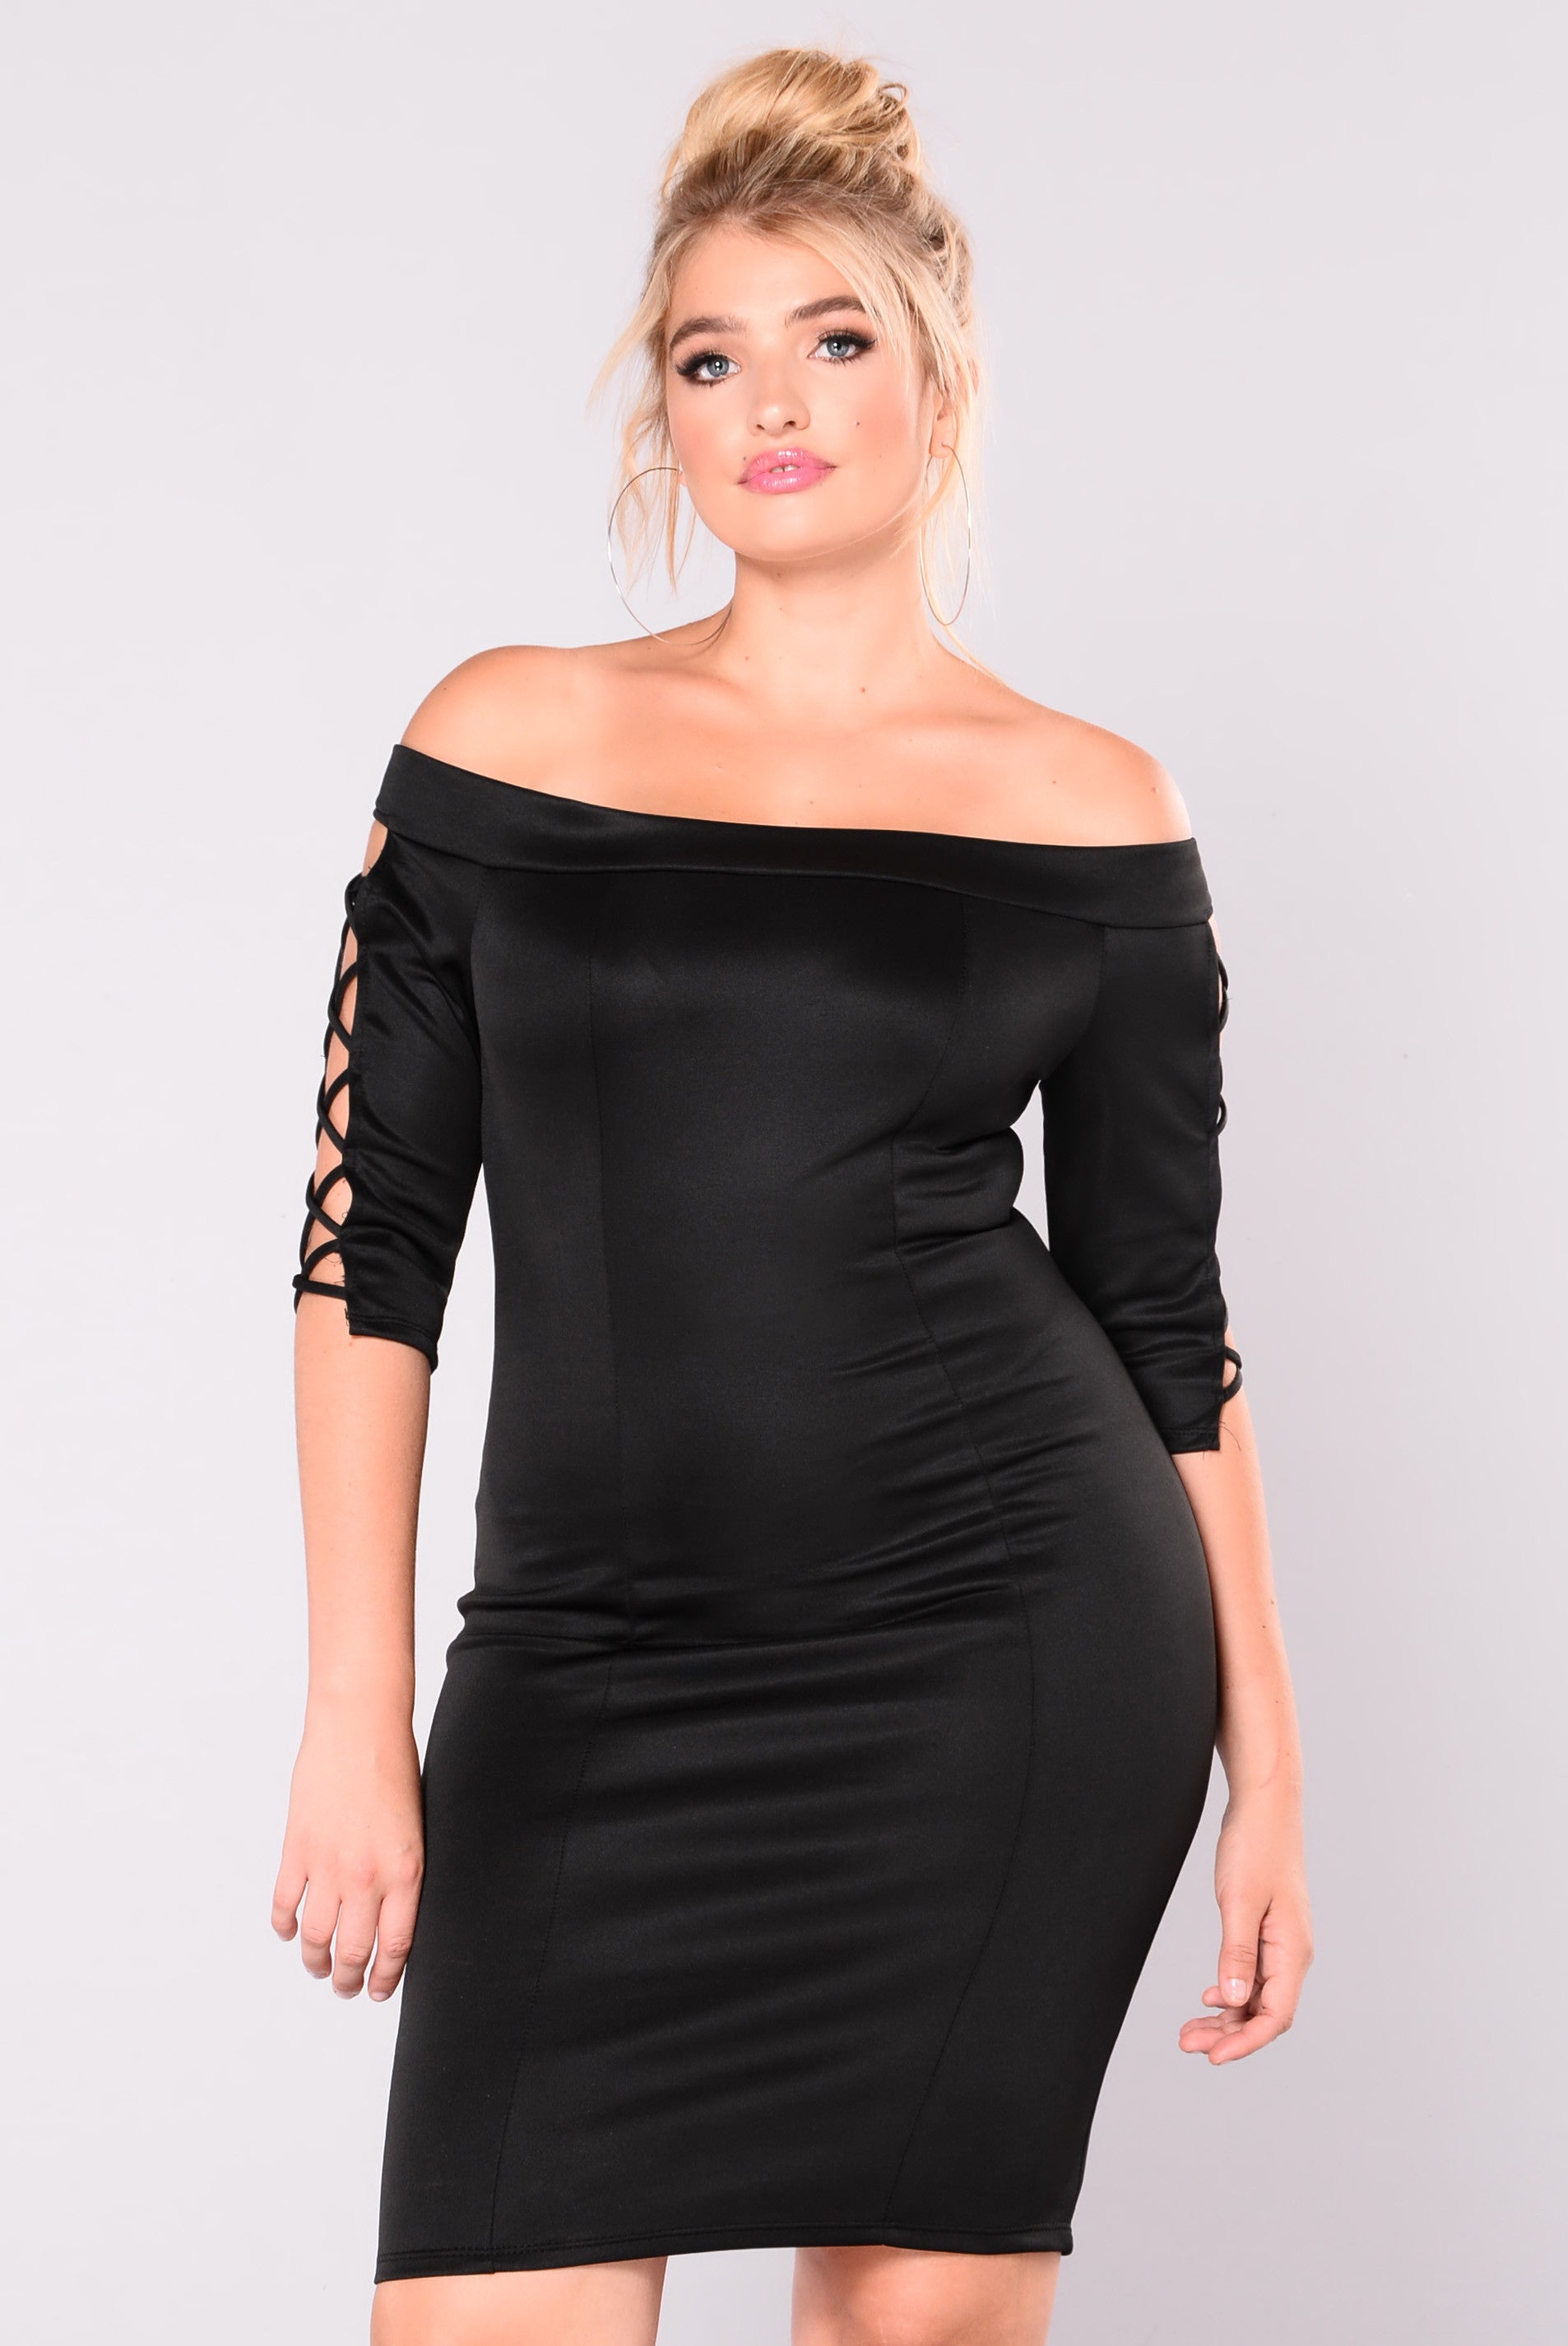 Lace Up To Make Up Dress - Black